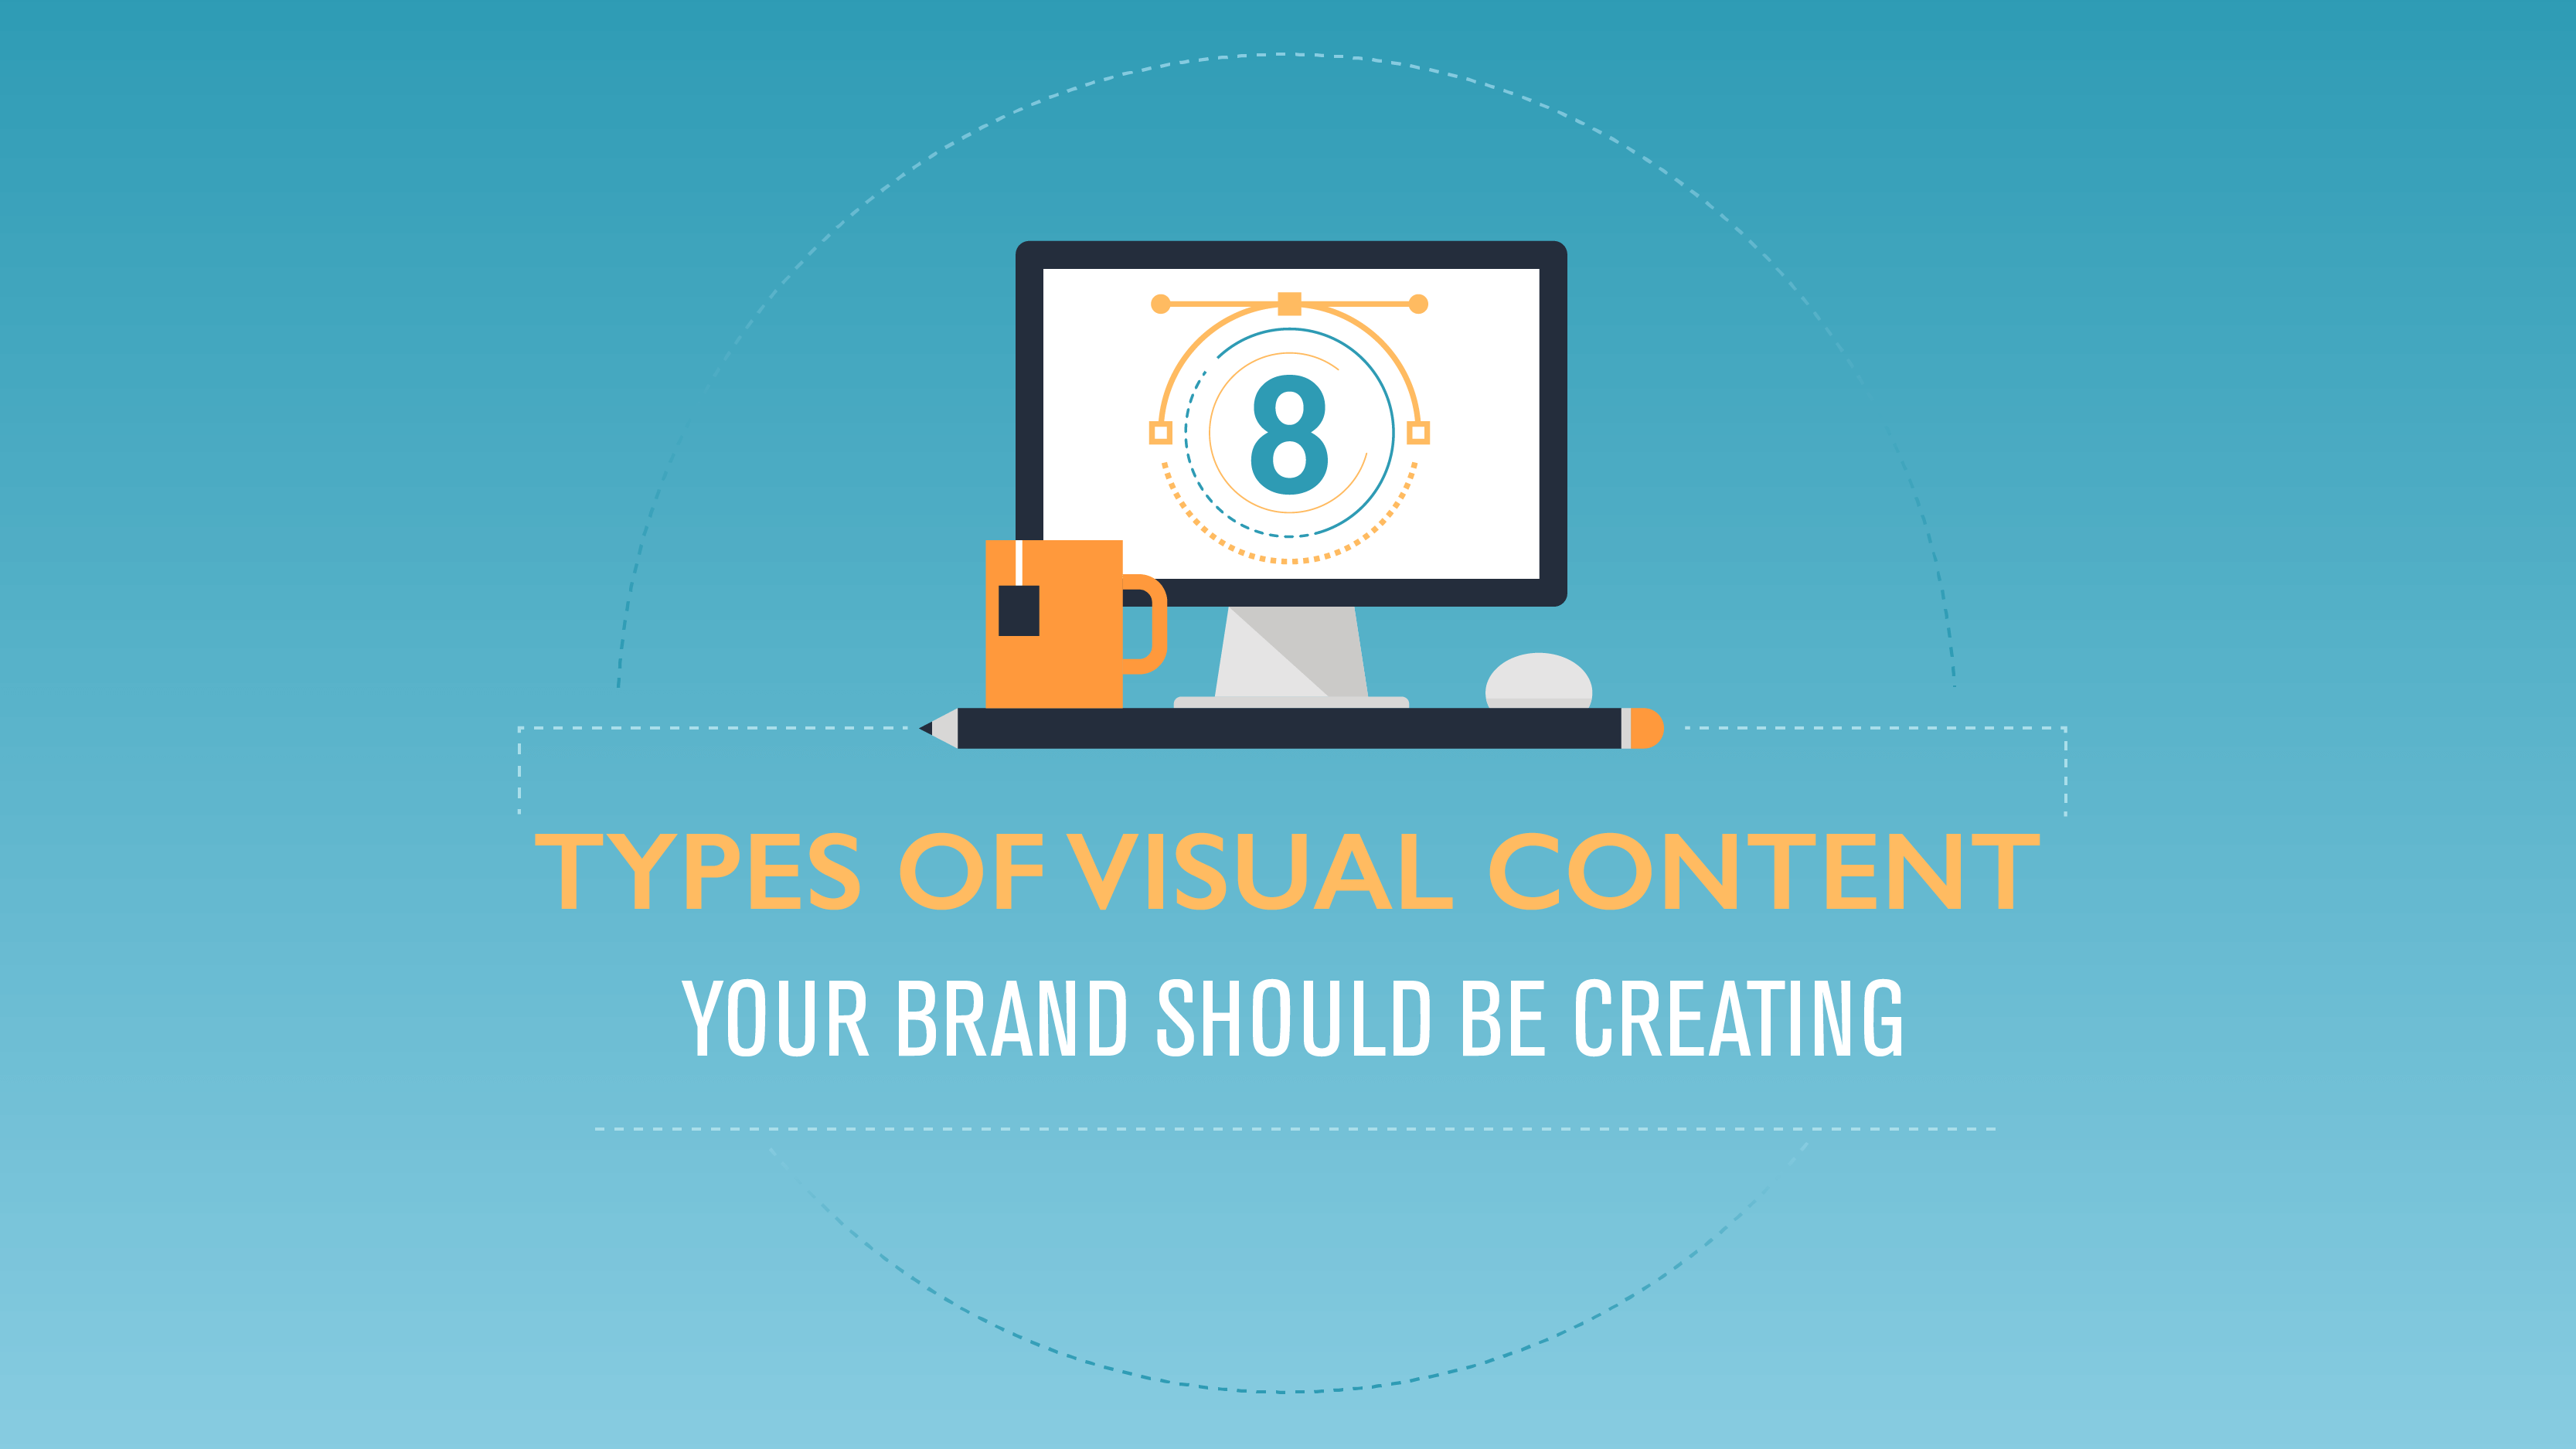 Types of visual content brands should create